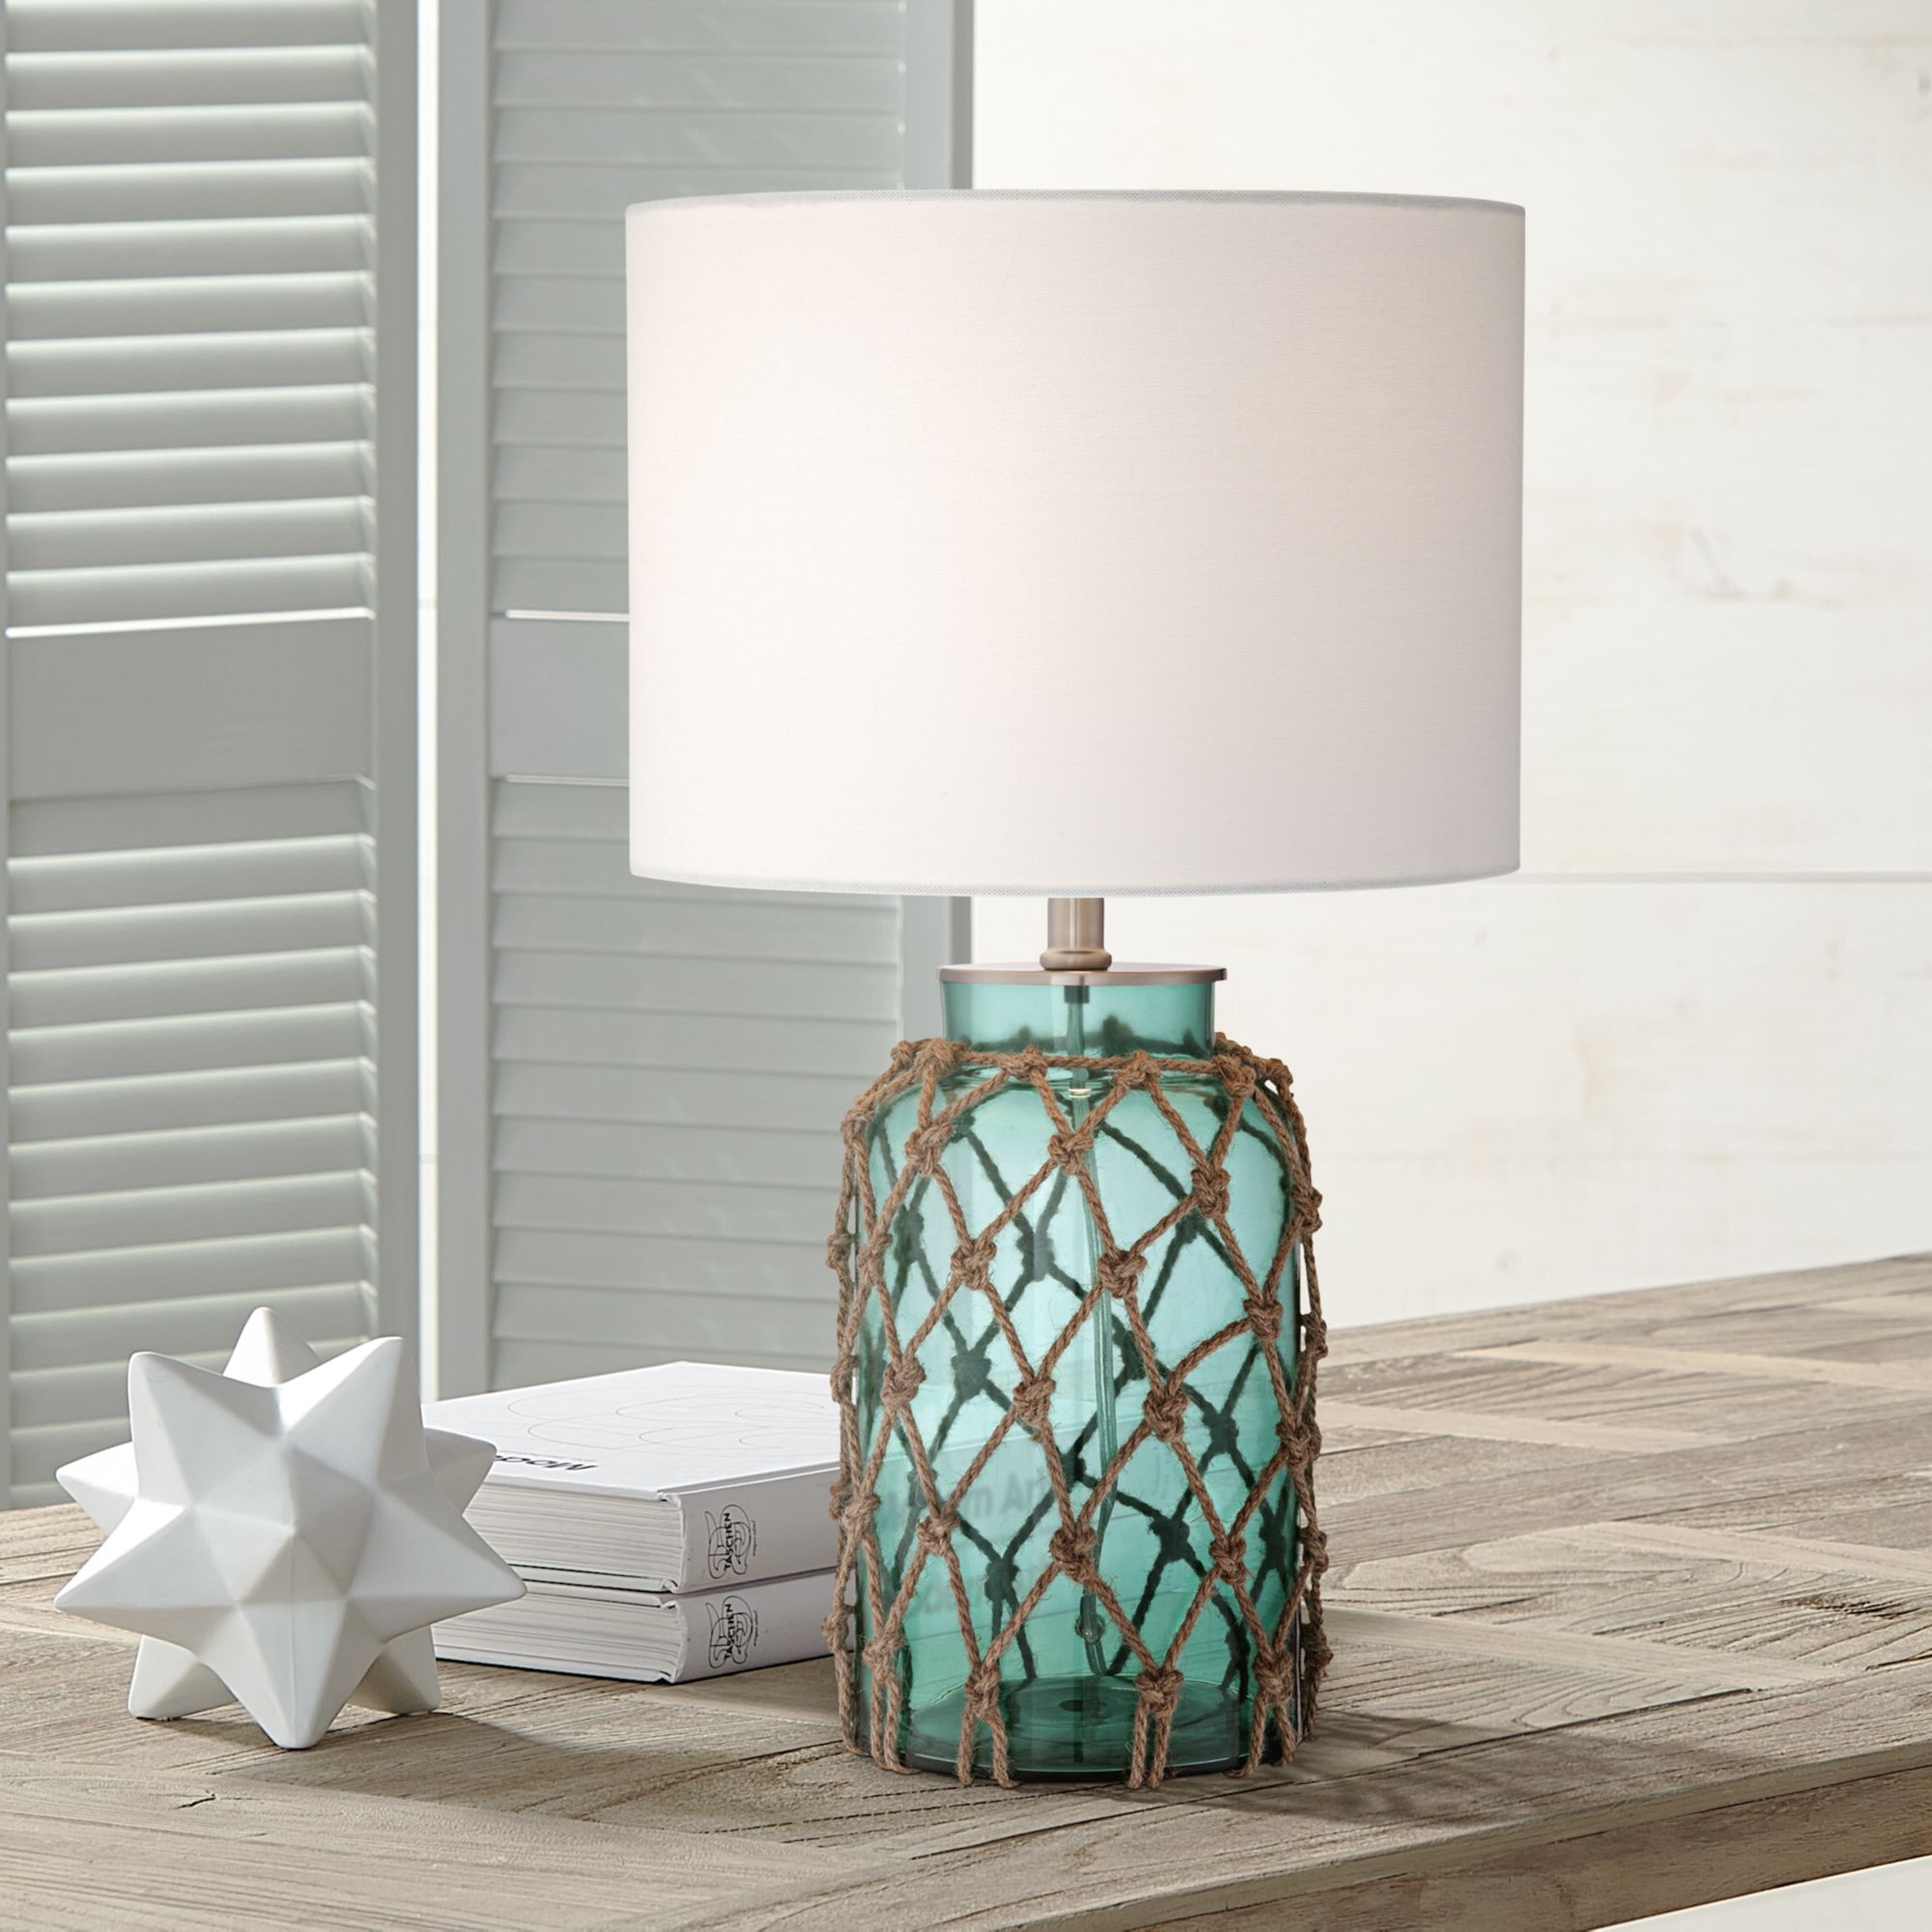 lighting nautical accent table lamp coastal blue green glass rope off white drum shade for living room family bedroom light pink chandelier holiday placemats and napkins outdoor